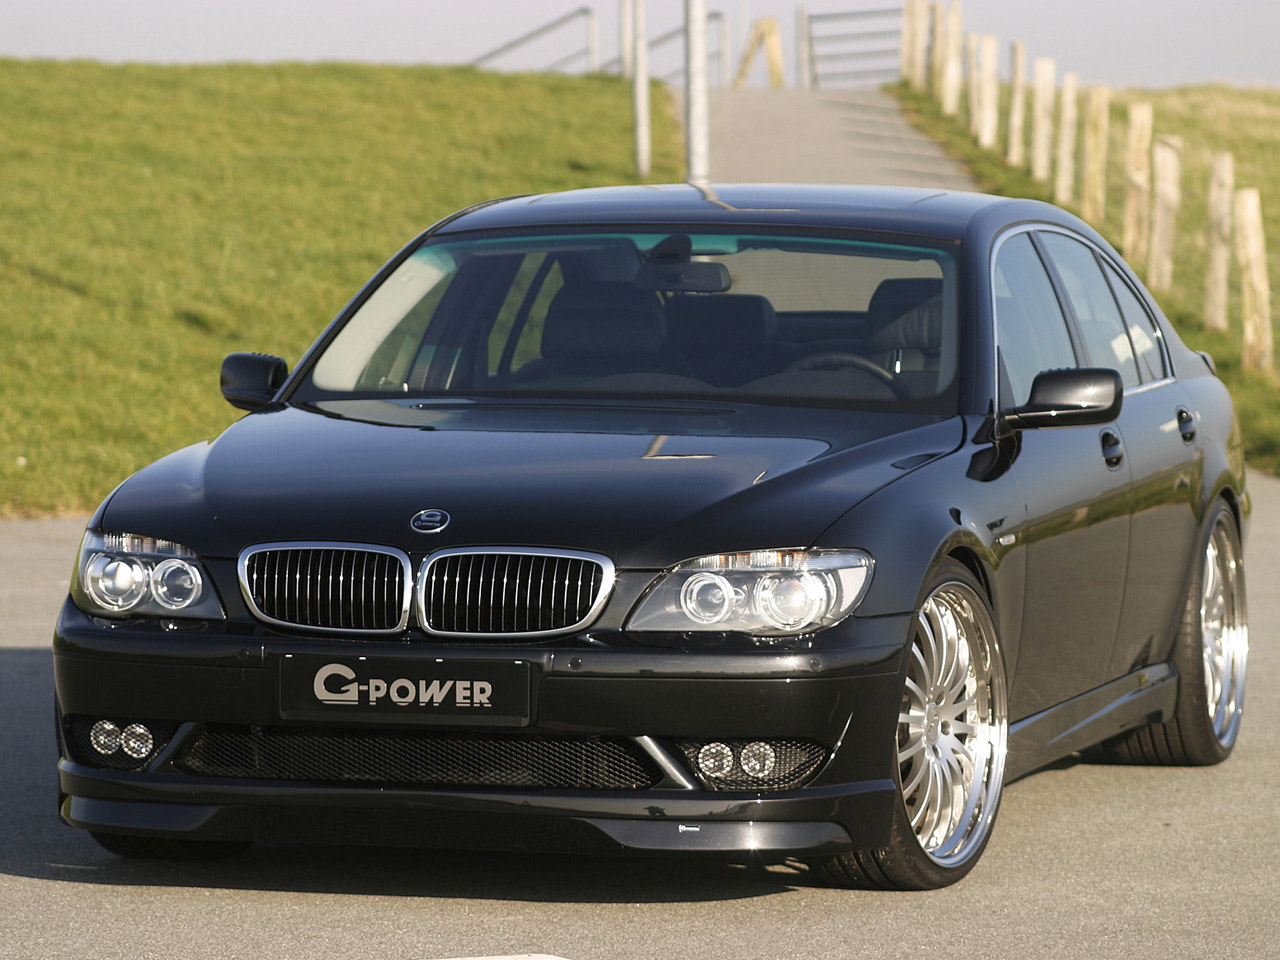 G Power BMW G7 5.2 K (E65) photos - PhotoGallery with 7 ...